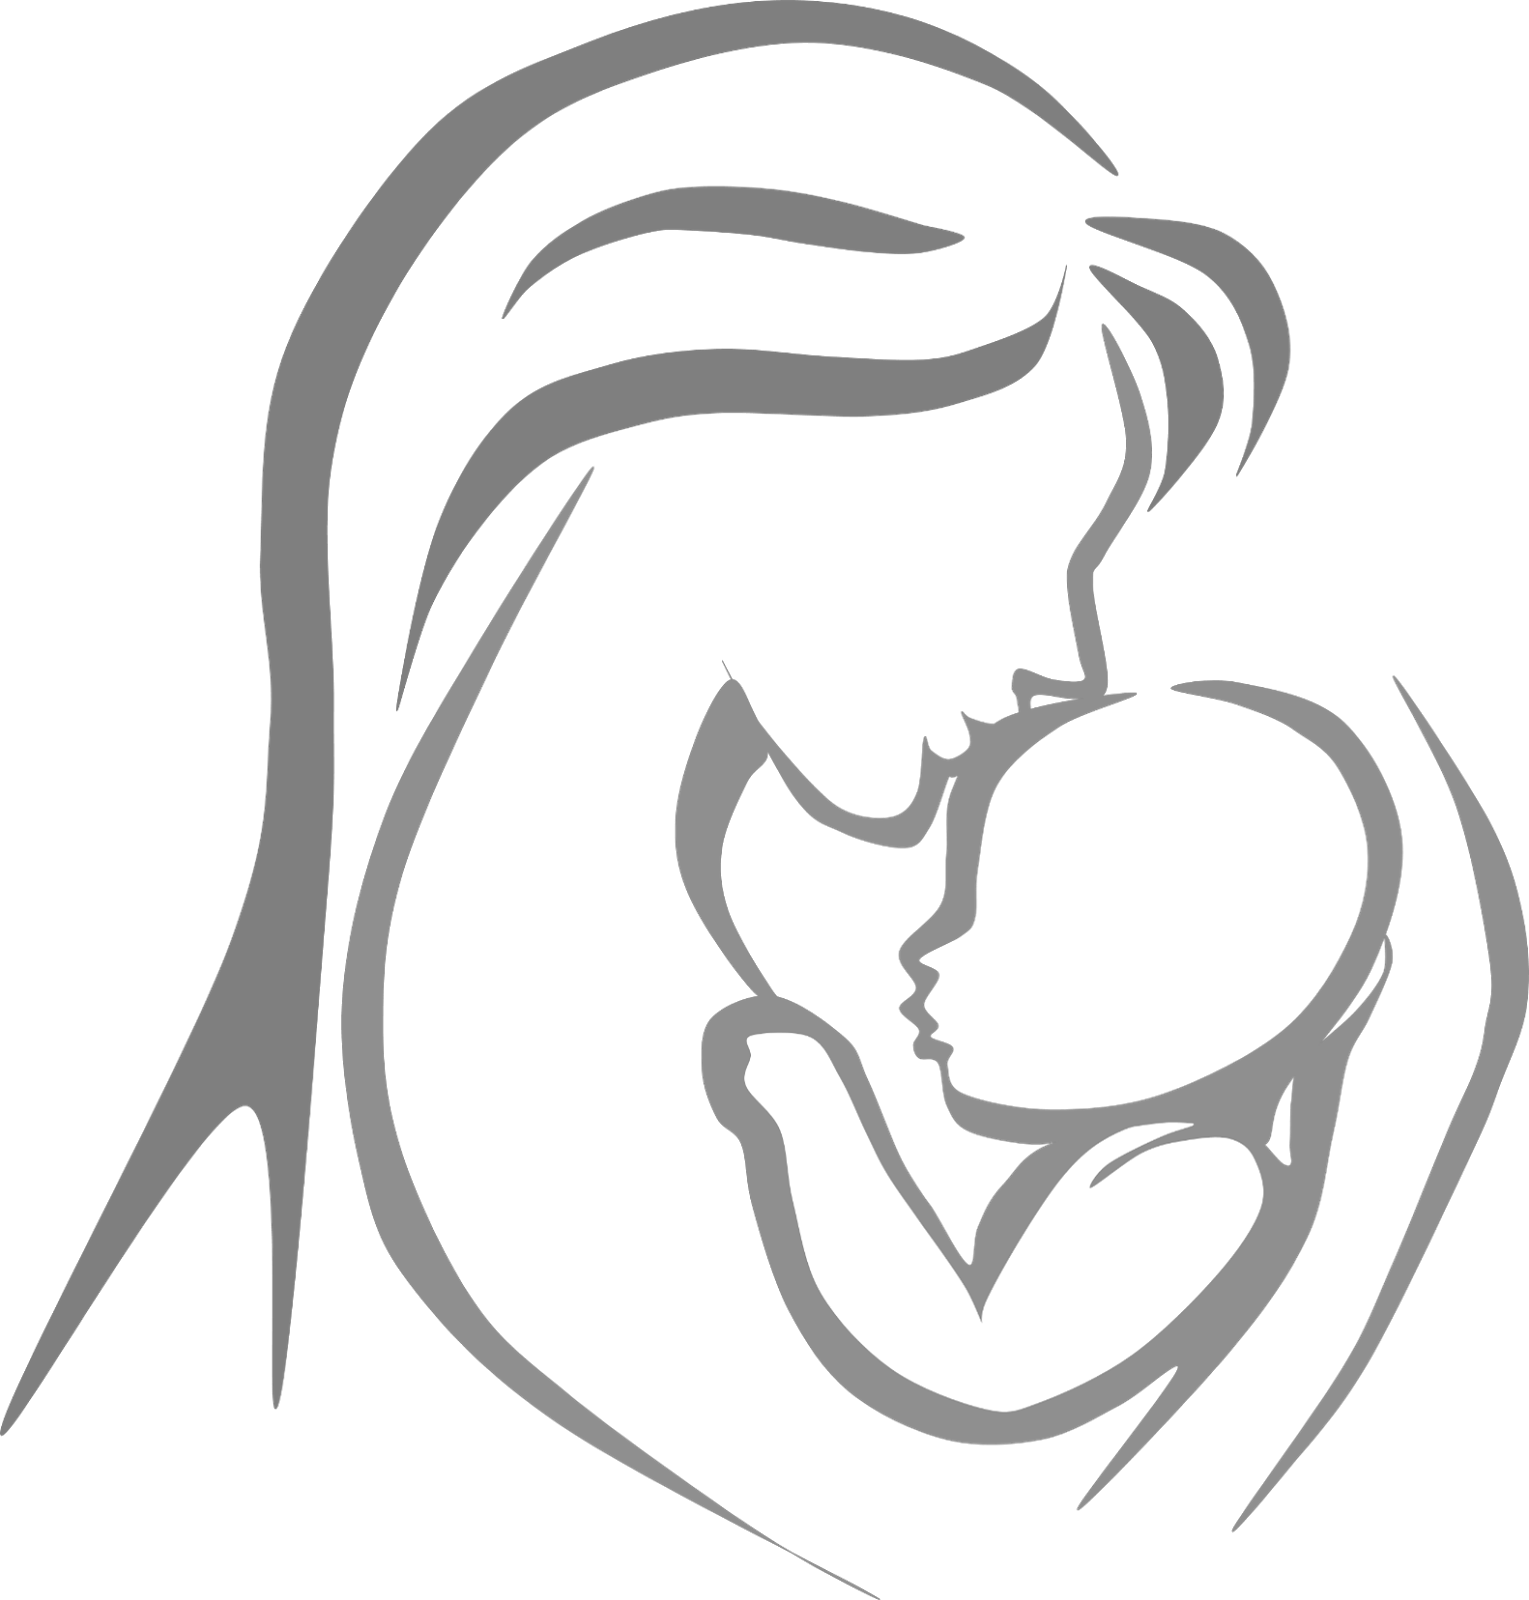 graphic freeuse download Mother clipart born baby. Black and white cilpart.